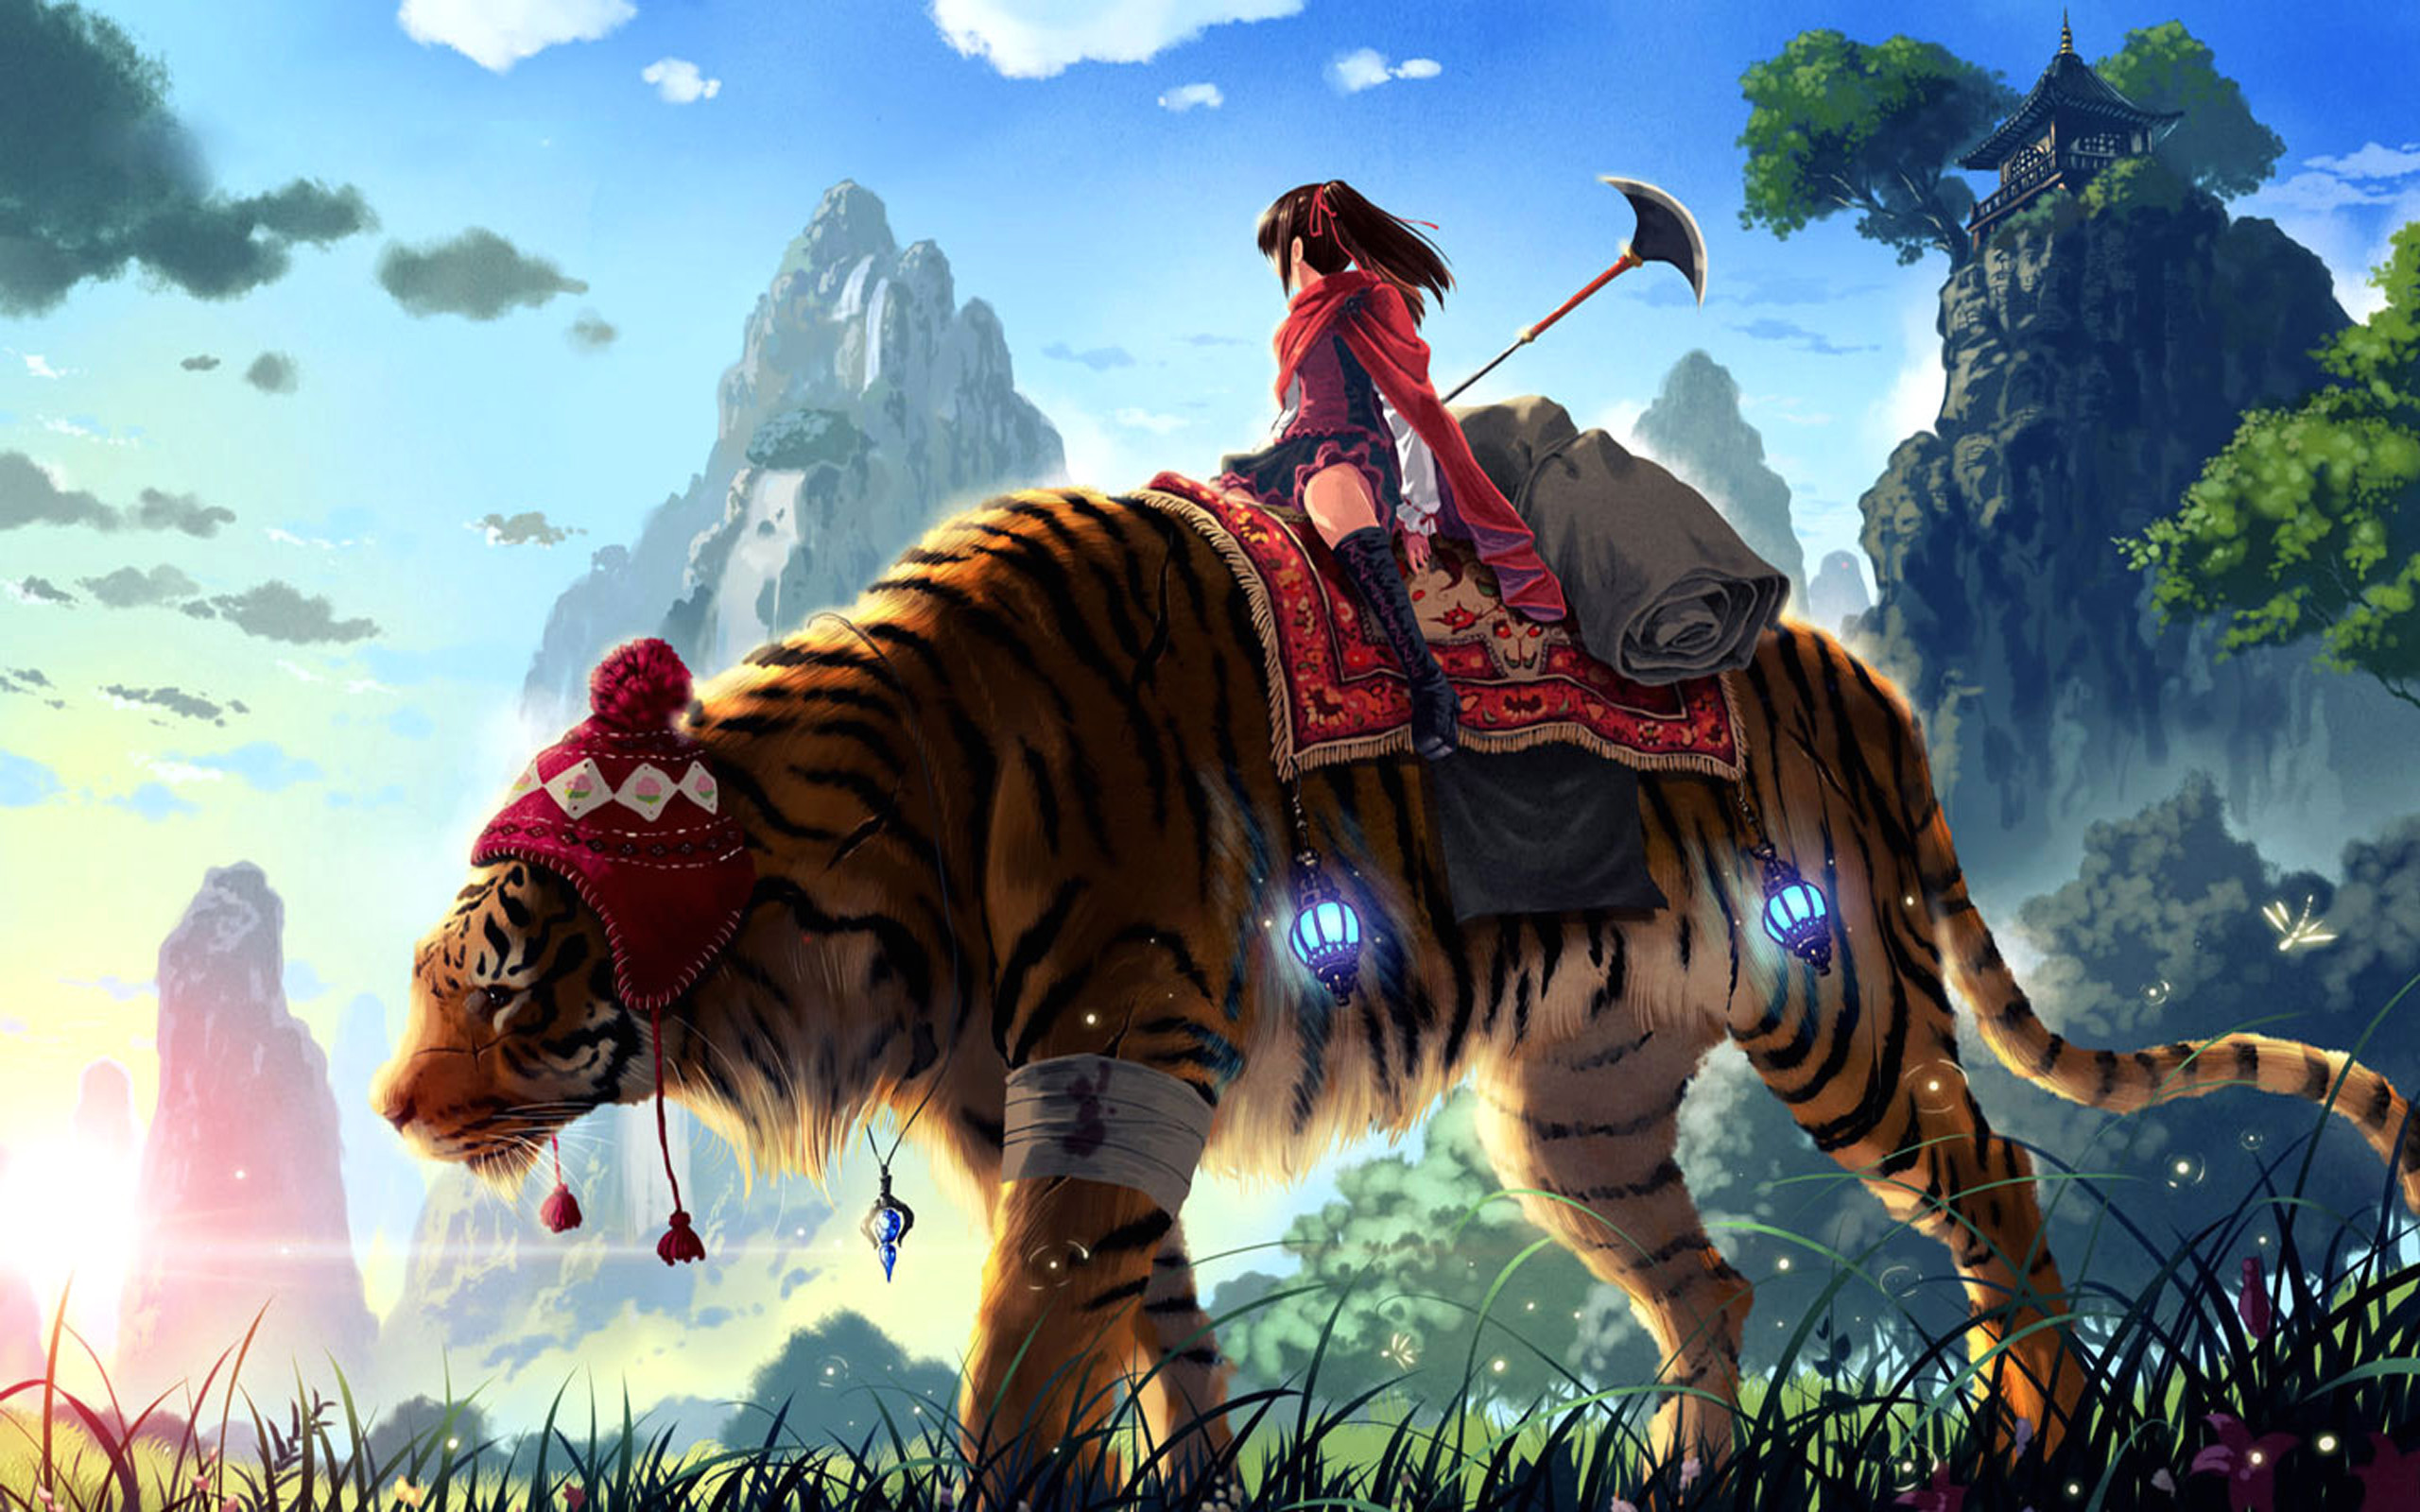 Collection of Cool Anime Hd Wallpapers on HDWallpapers HD Wallpapers Anime  Wallpapers)